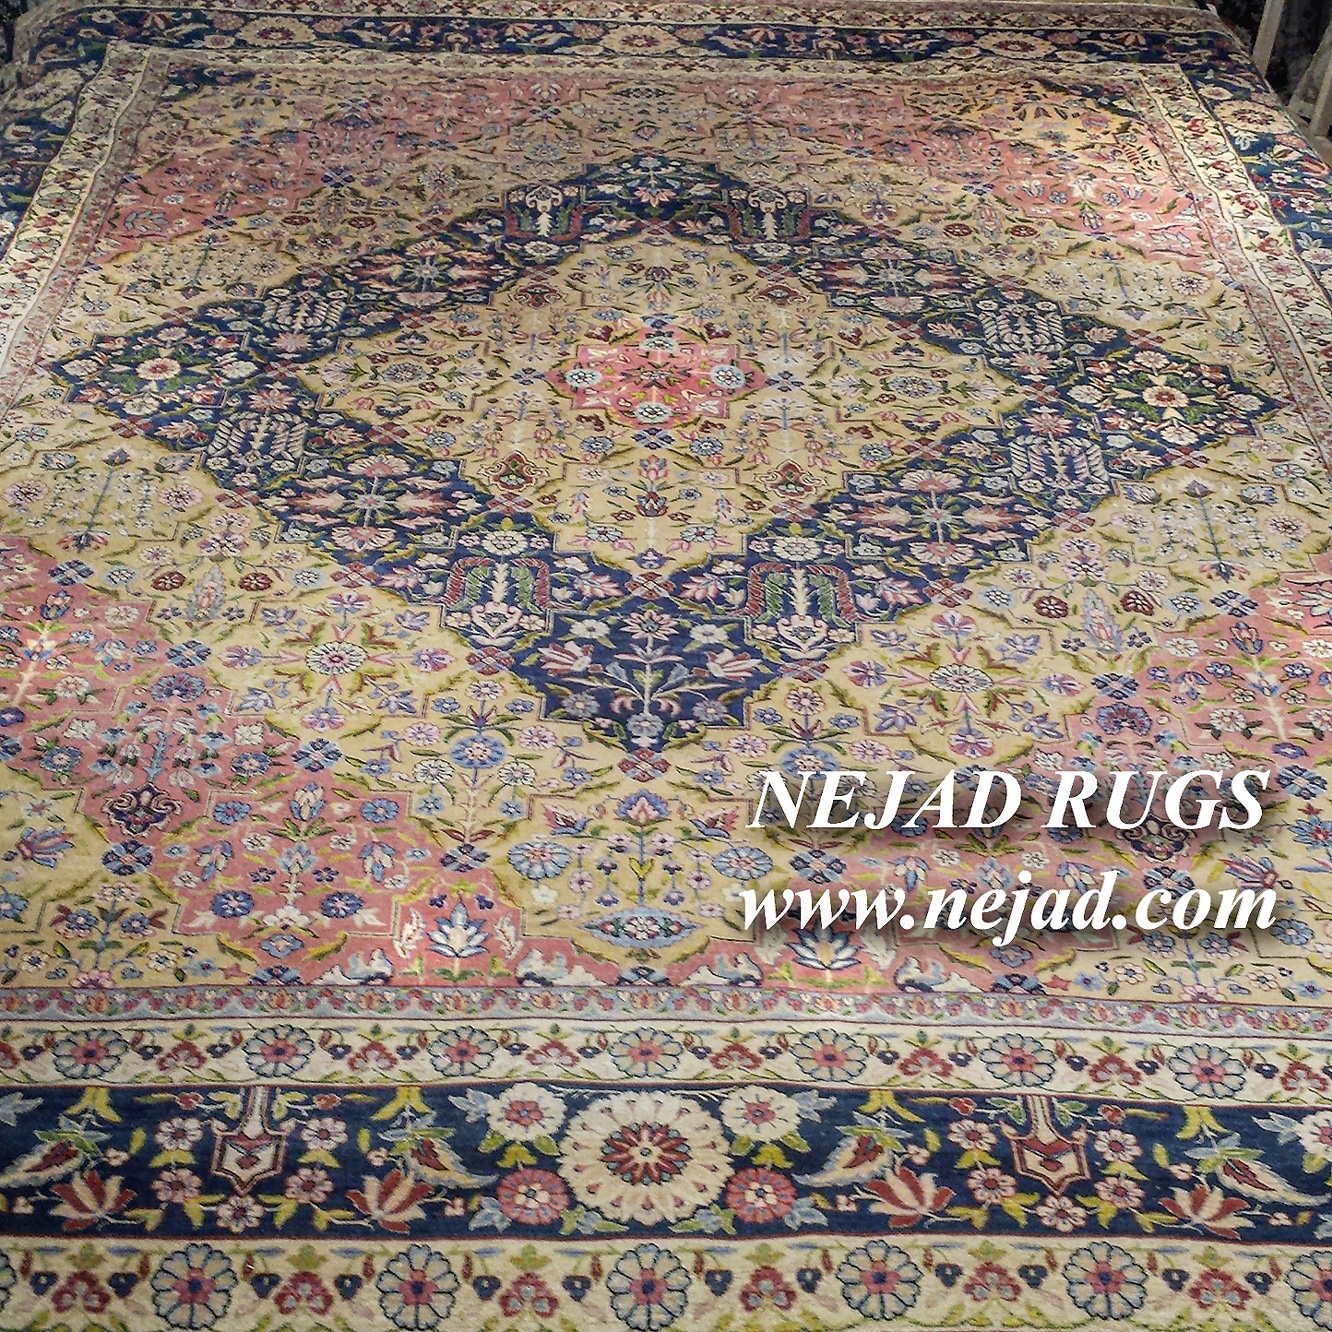 Antique Persian Kerman Rug - Nejad Rugs #987640